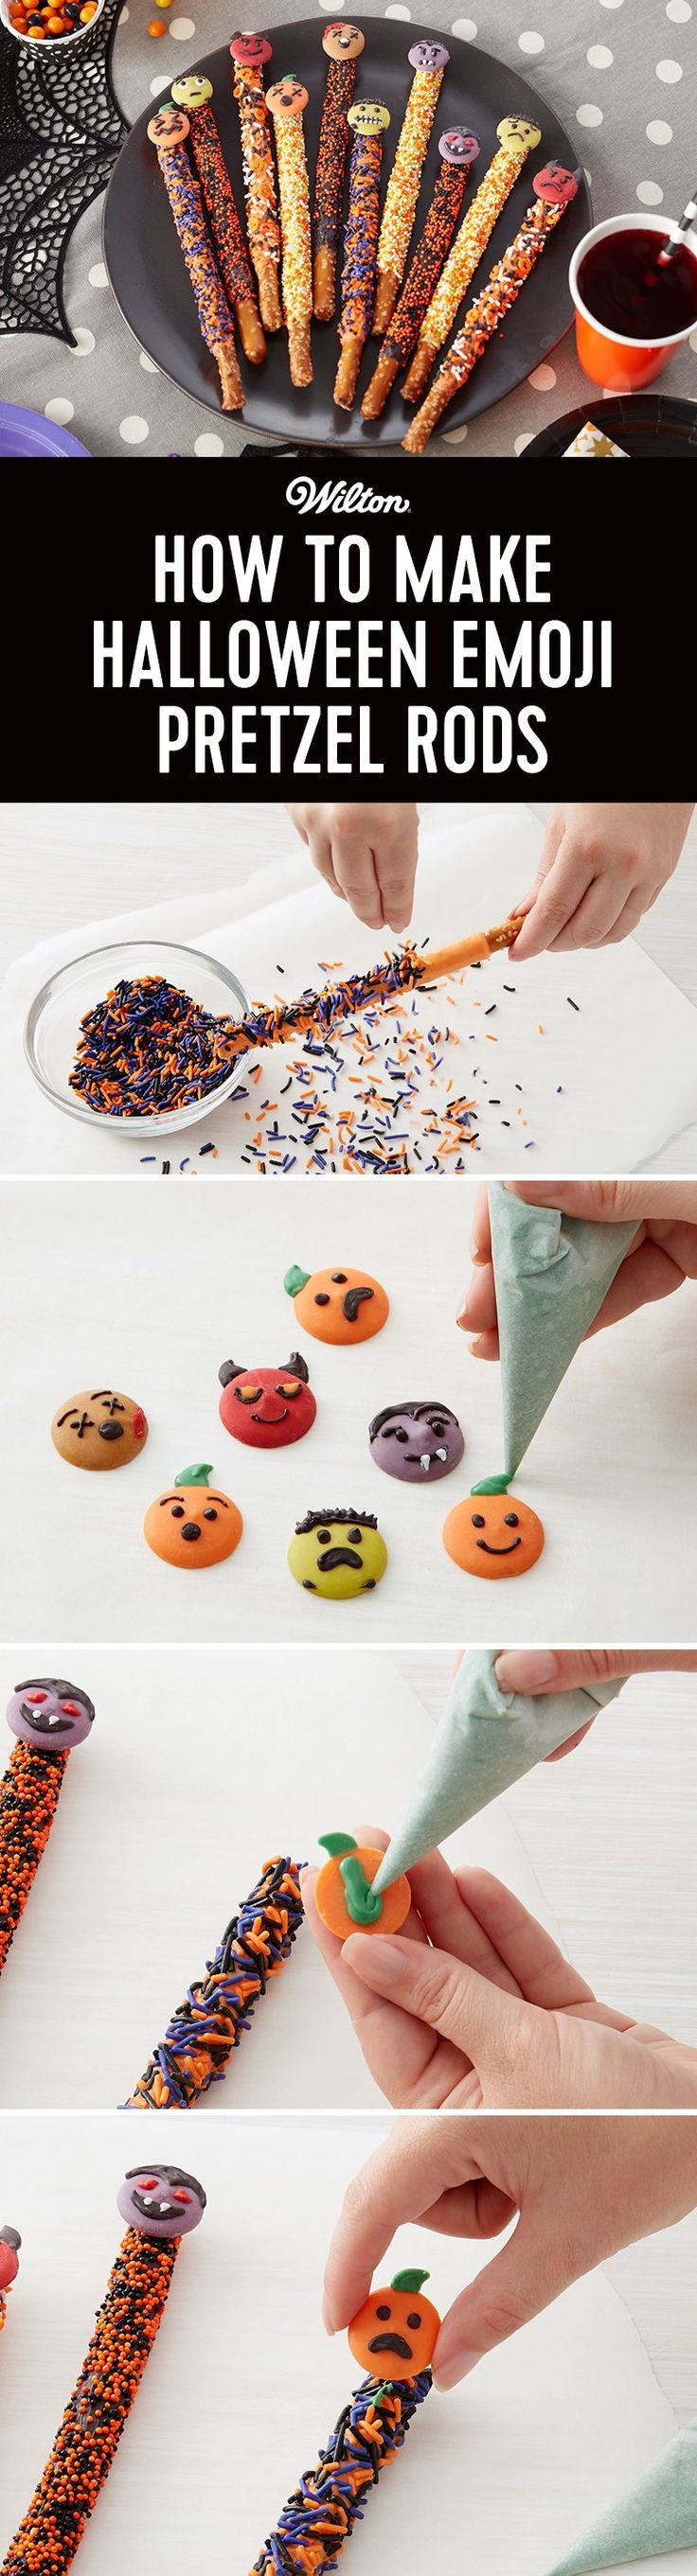 How to Make Halloween Emoji Pretzel Rods - Dip pretzel rods in melted Candy Melts candy and decorate festive Halloween sprinkles. Topped rods with cute Candy Melts candy monsters for a fun treat for kids and adults alike. Easy to make for decorators of all skill levels, these Halloween pretzel rods are a fun way to bring your favorite emojis to life!